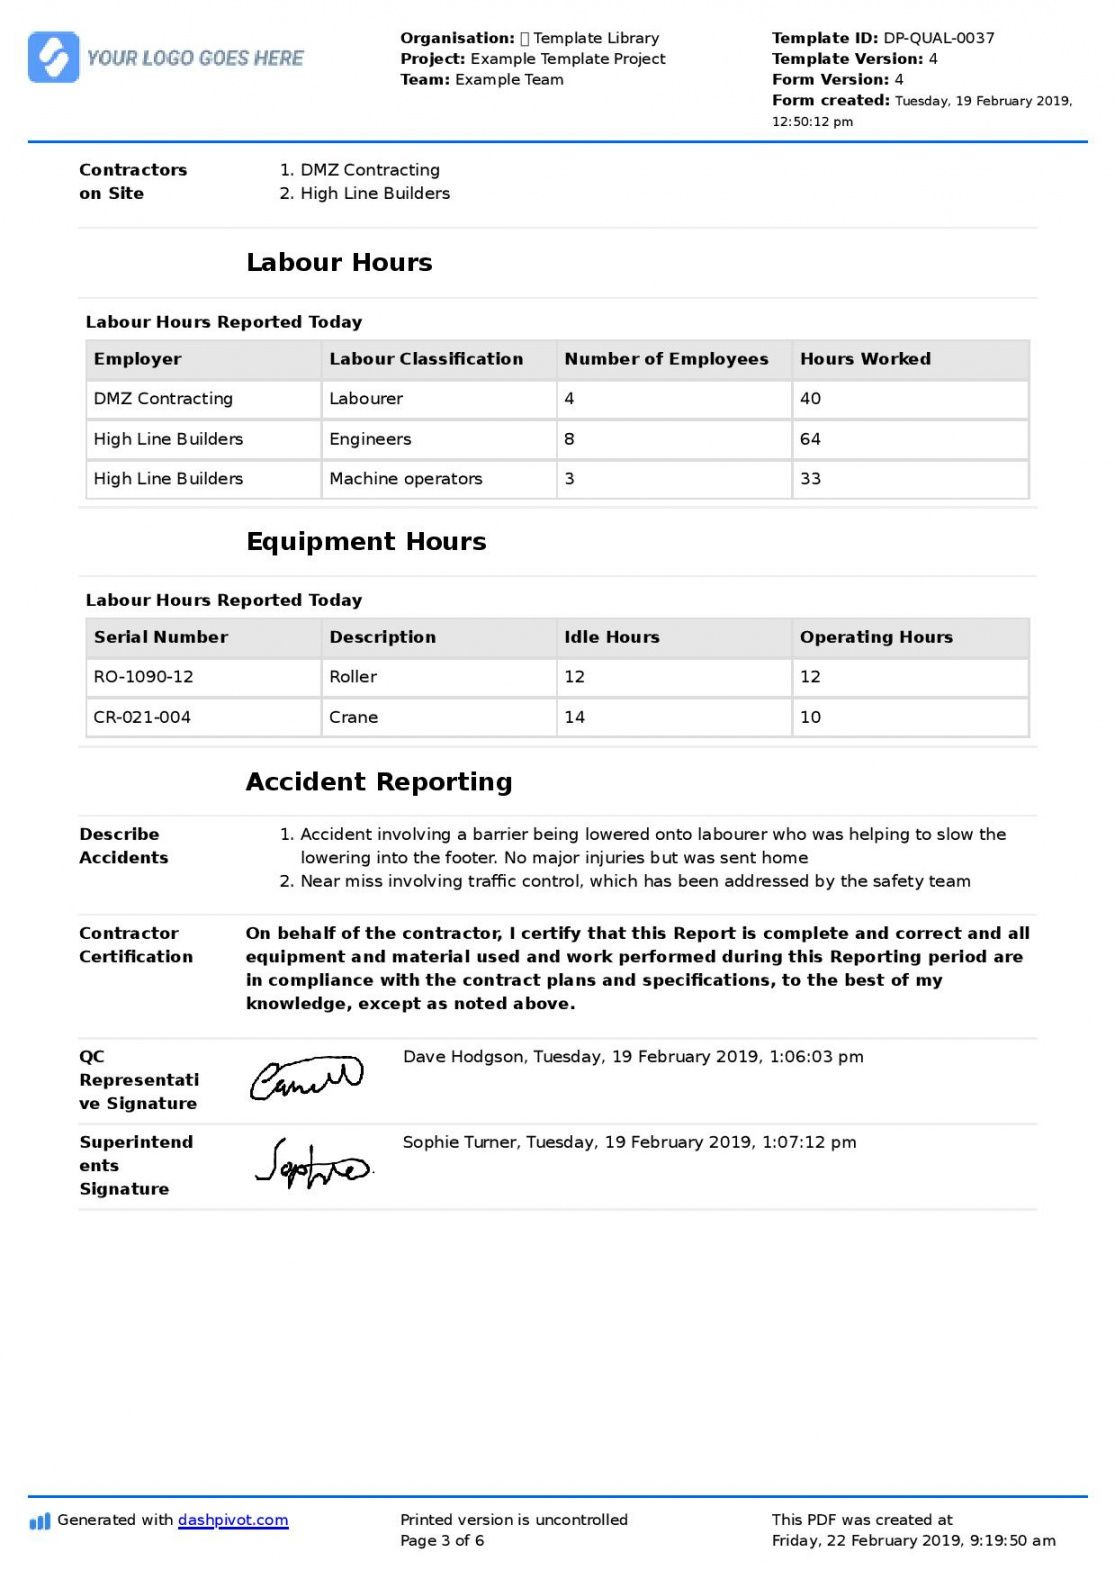 qa qc report template and sample with customisable format quality management system template for construction